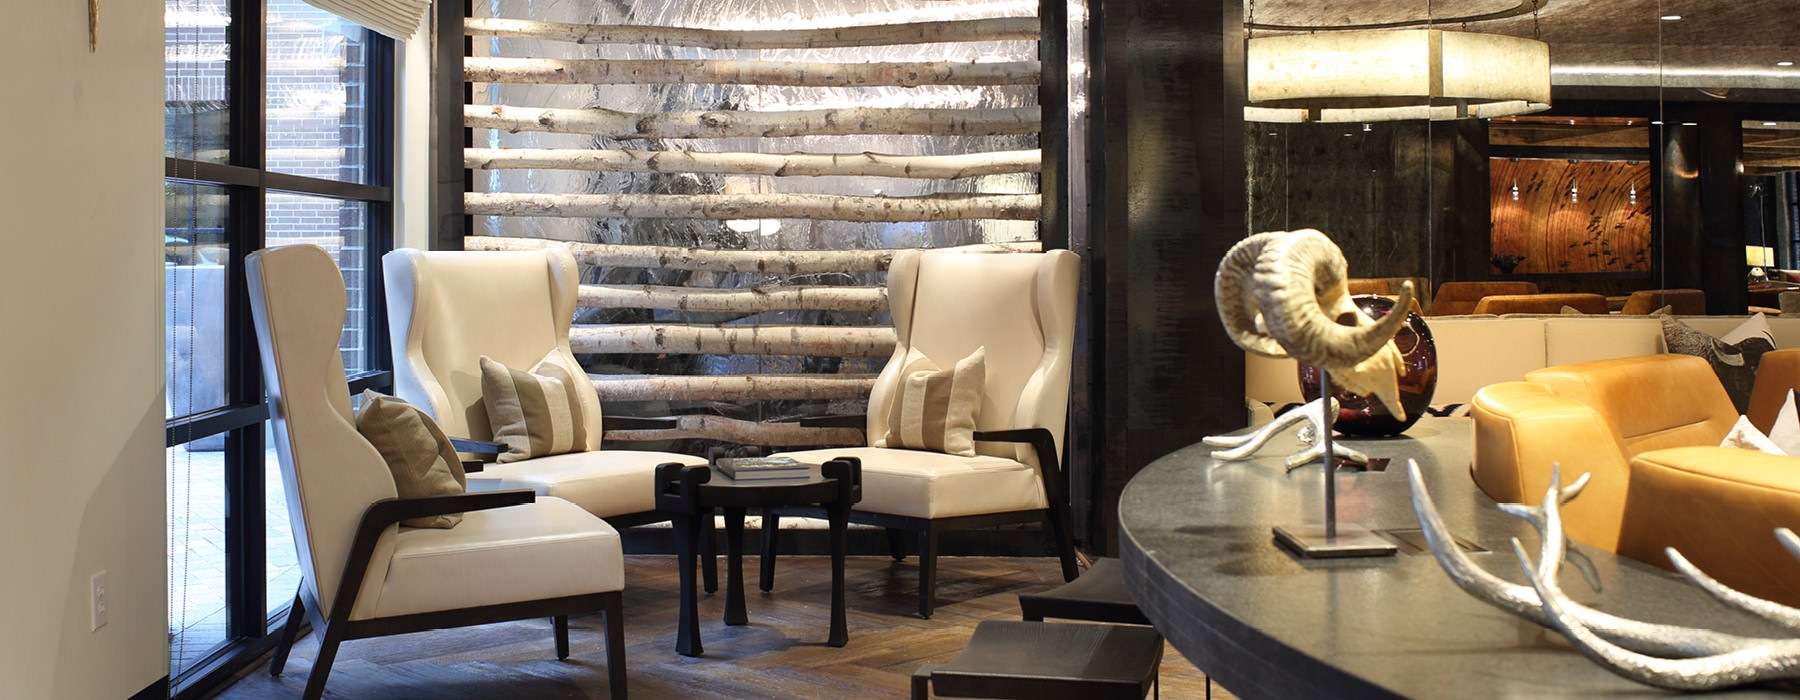 cozy seating areas in clubhouse